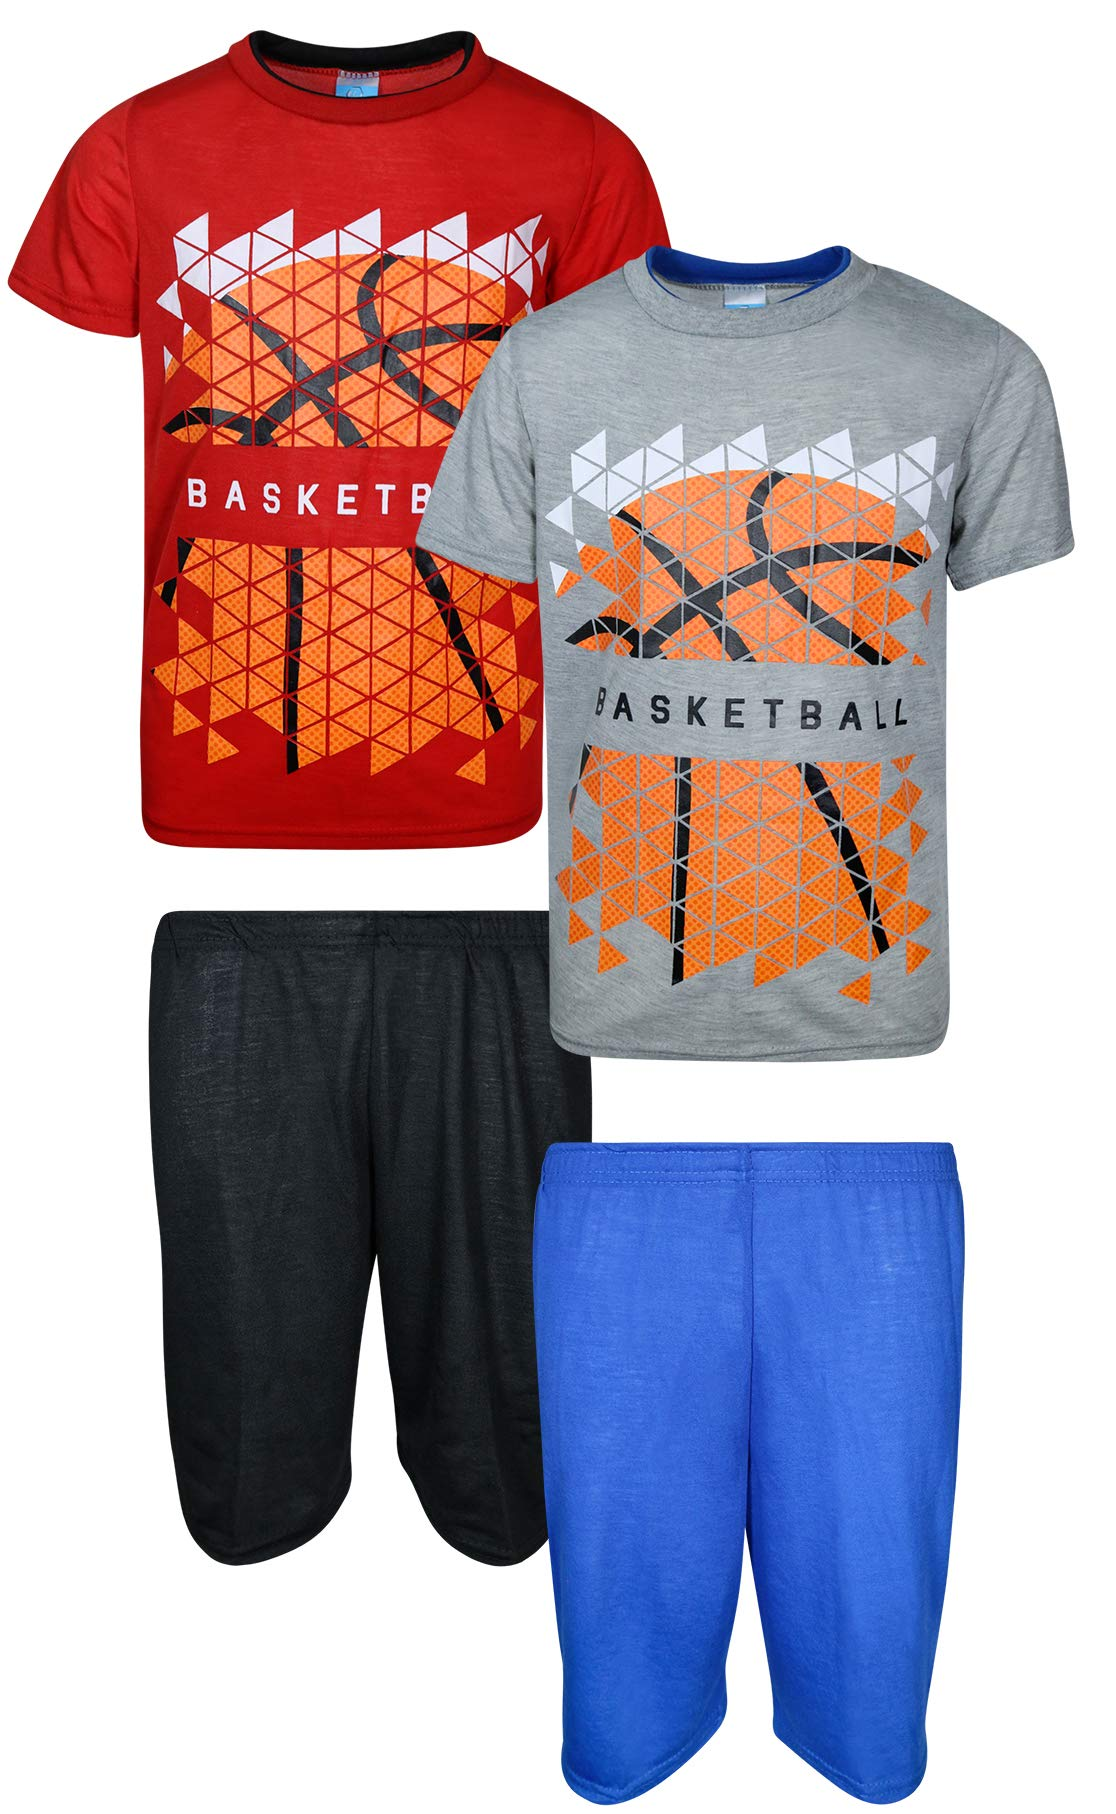 Tuff Guys 4-Piece Comfortable T-Shirt and Short Pajama Set, Basketball, Size 8